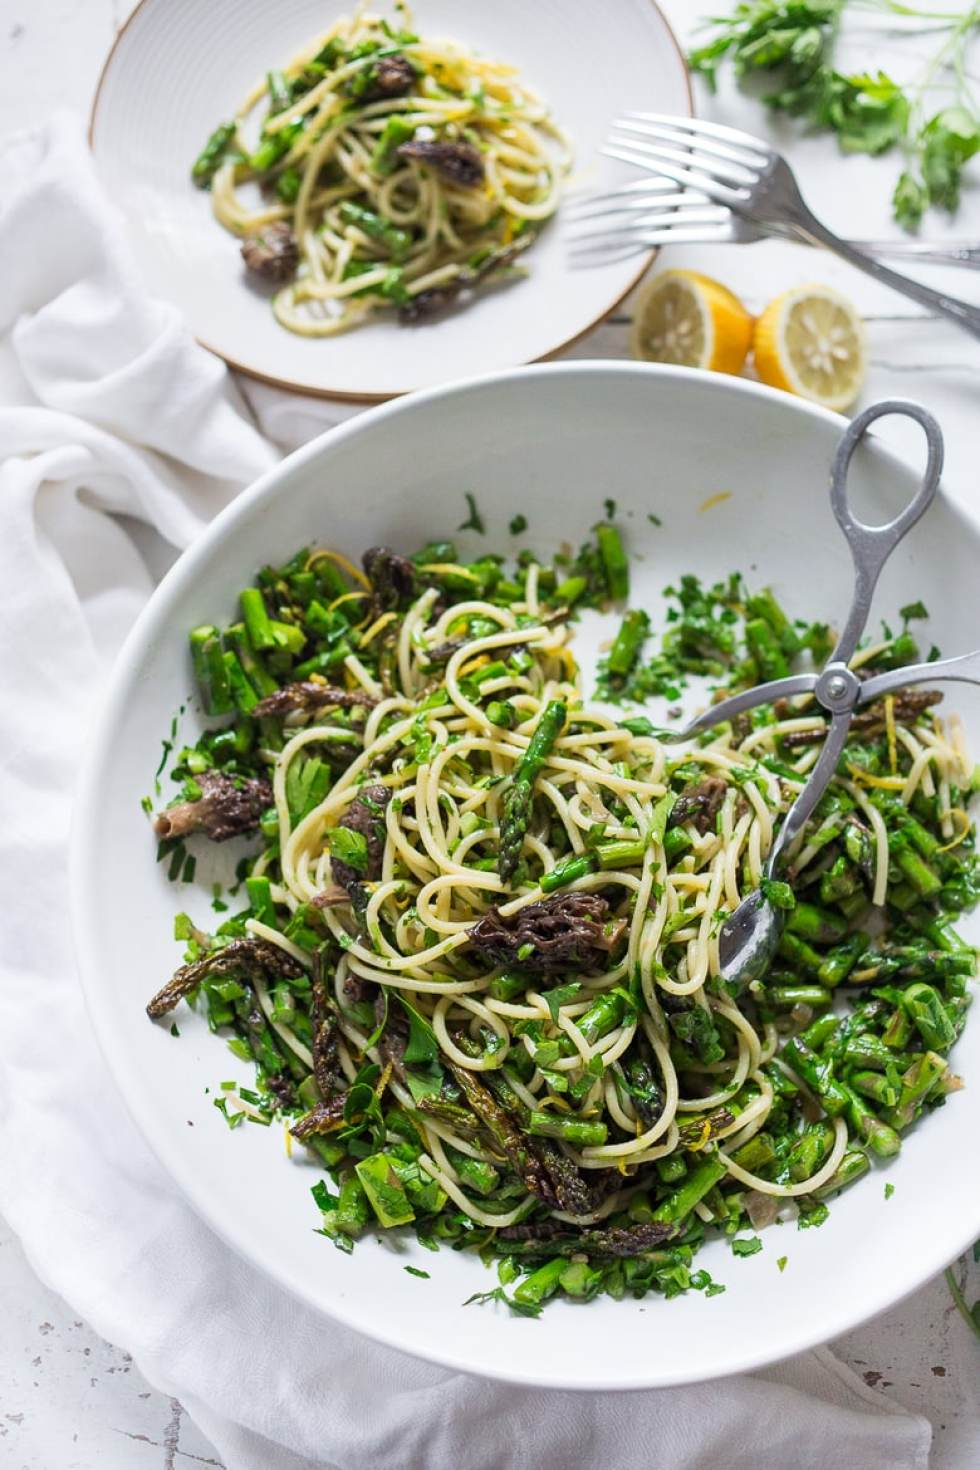 12 Delicious Spring Recipes to celebrate the season! Spring Pasta Salad with asparagus, mushrooms and a zesty lemon- parsley dressing. | www.feastingathome.com